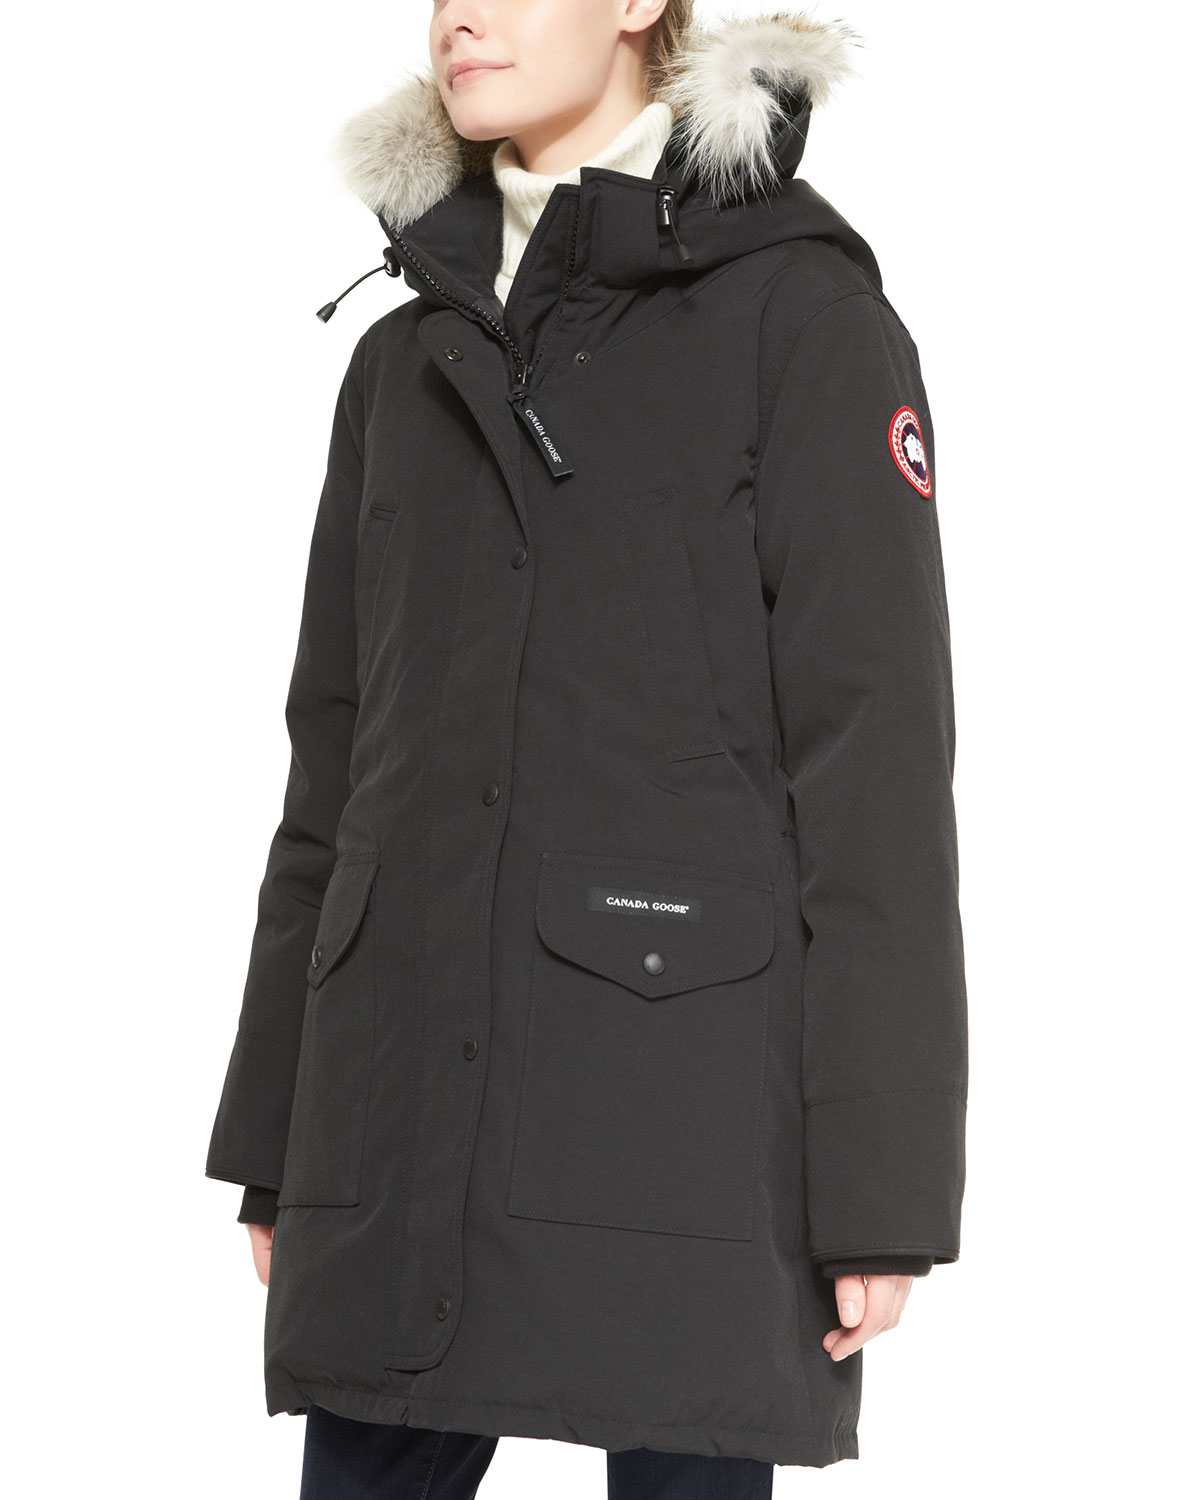 canada goose trillium furhood parka jacket in black lyst. Black Bedroom Furniture Sets. Home Design Ideas